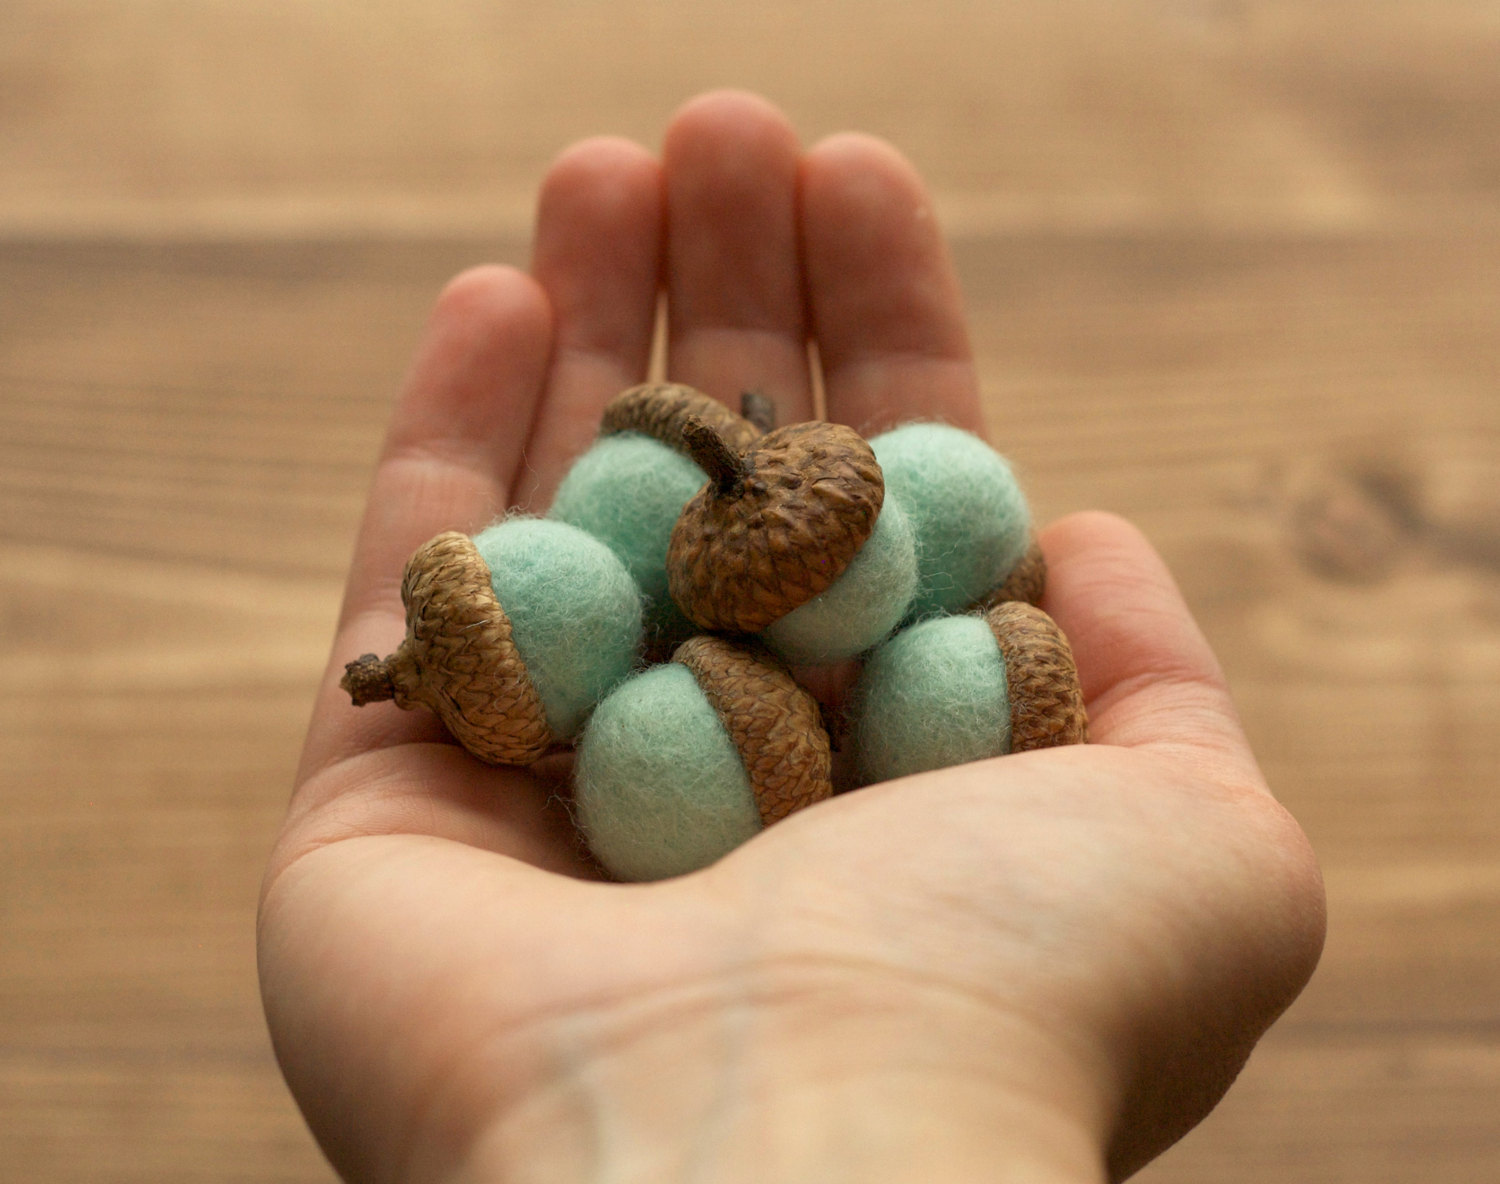 Felted Acorns in Wintergreen, Mint, Spring, Winter Home Decor, Nature Inspired, Weddings, Woodland Decor, Baby Shower, Rustic, Party Favors